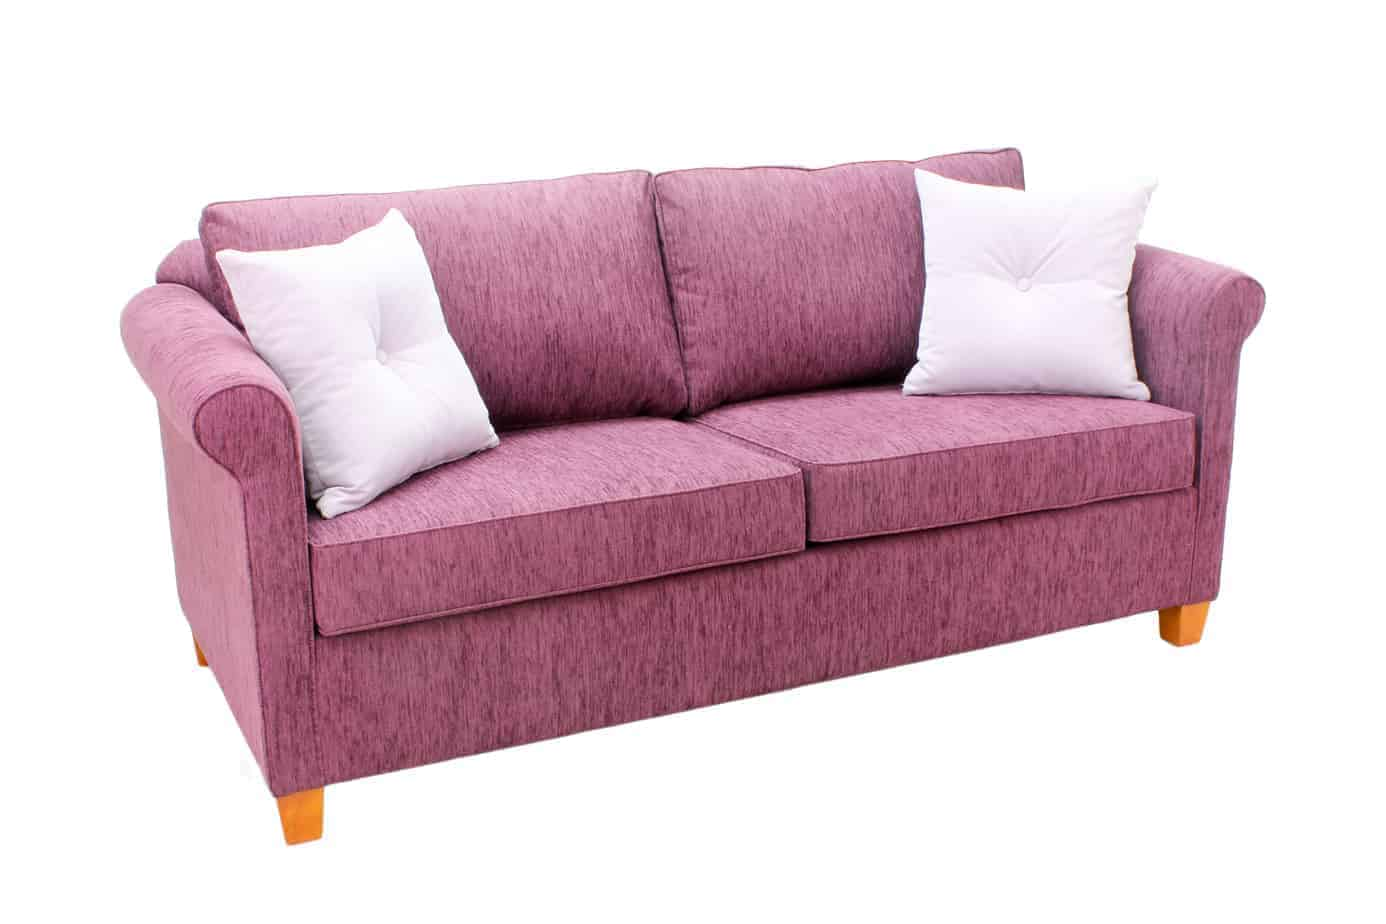 Malibu 3 seater Queen Sofa Bed 3